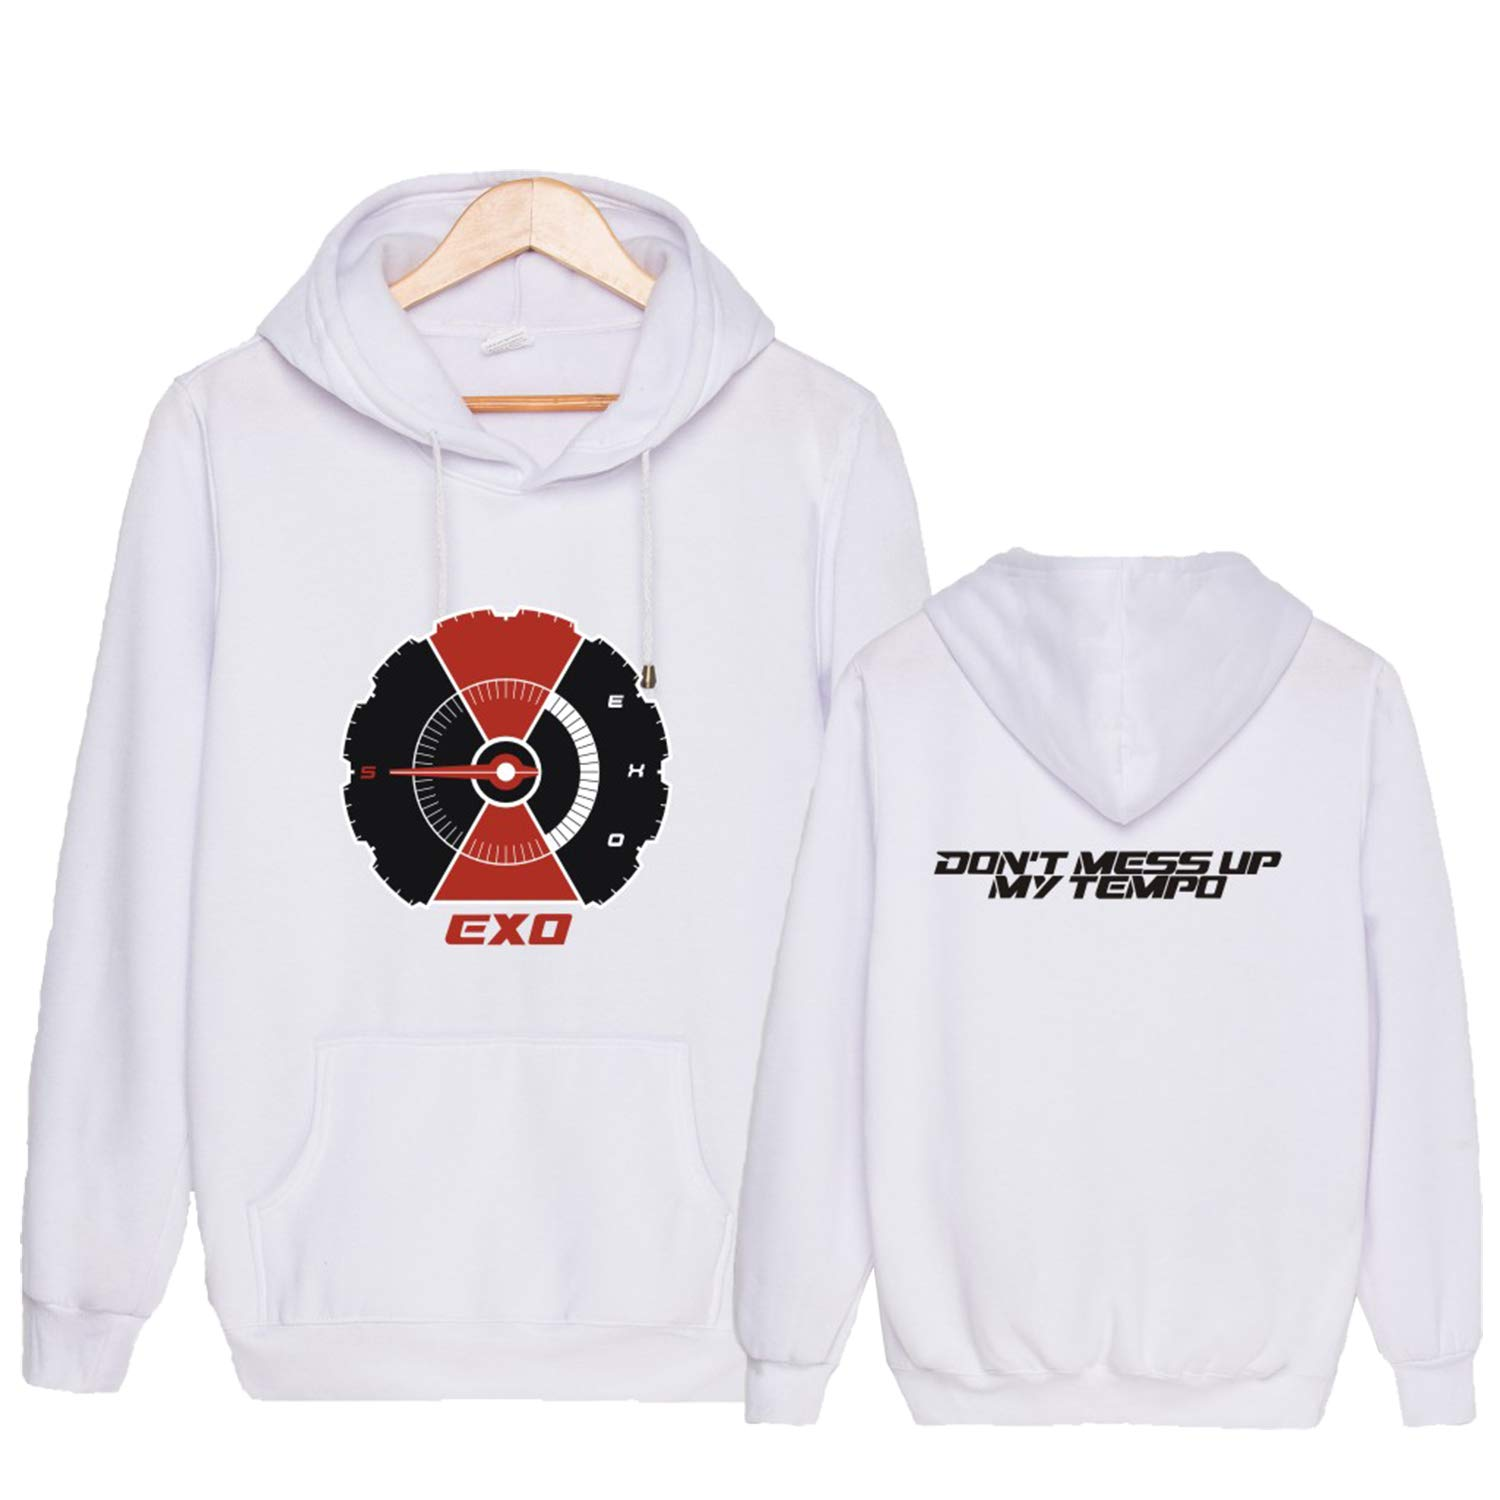 Qaedtls EXO New Album Dont Mess UP My Tempo Sweater Sehun Suho Xiumin Chanyeol Hoodie